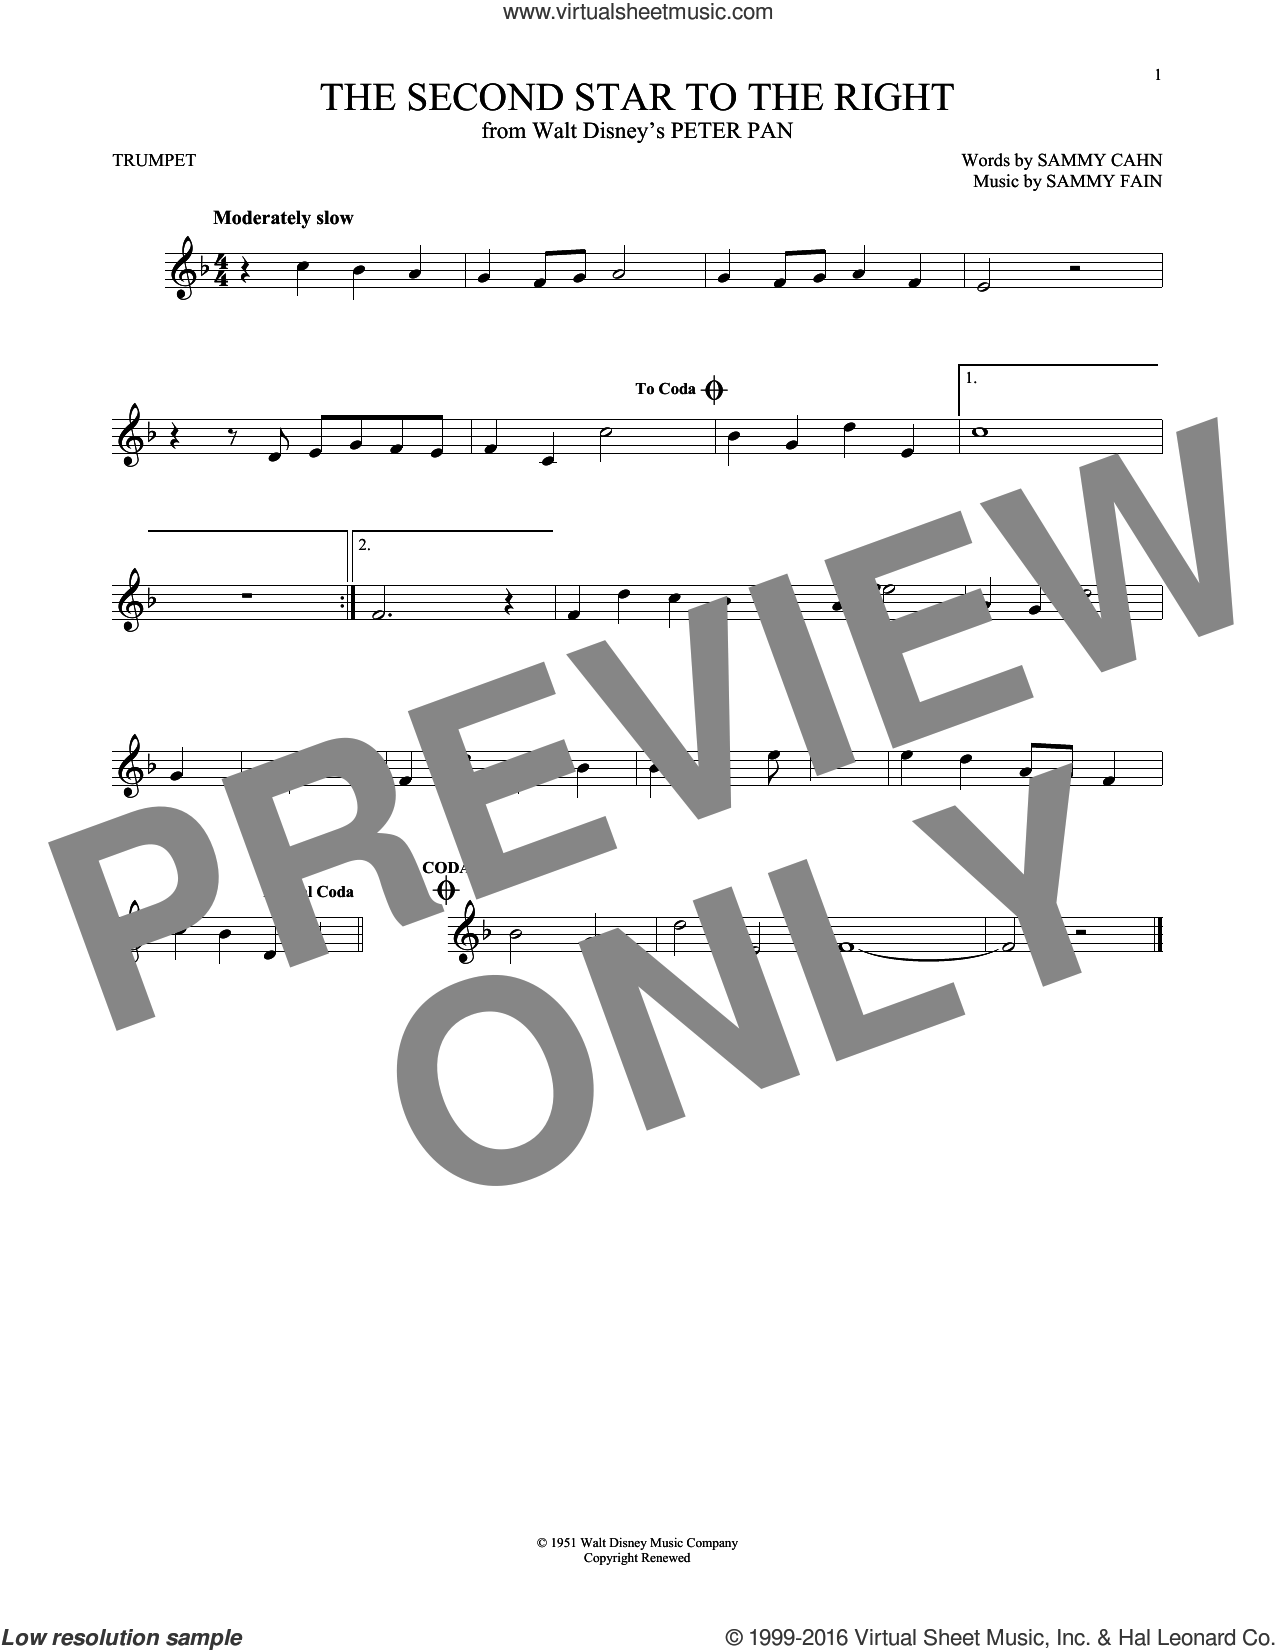 The Second Star To The Right sheet music for trumpet solo by Sammy Cahn and Sammy Fain, classical score, intermediate skill level